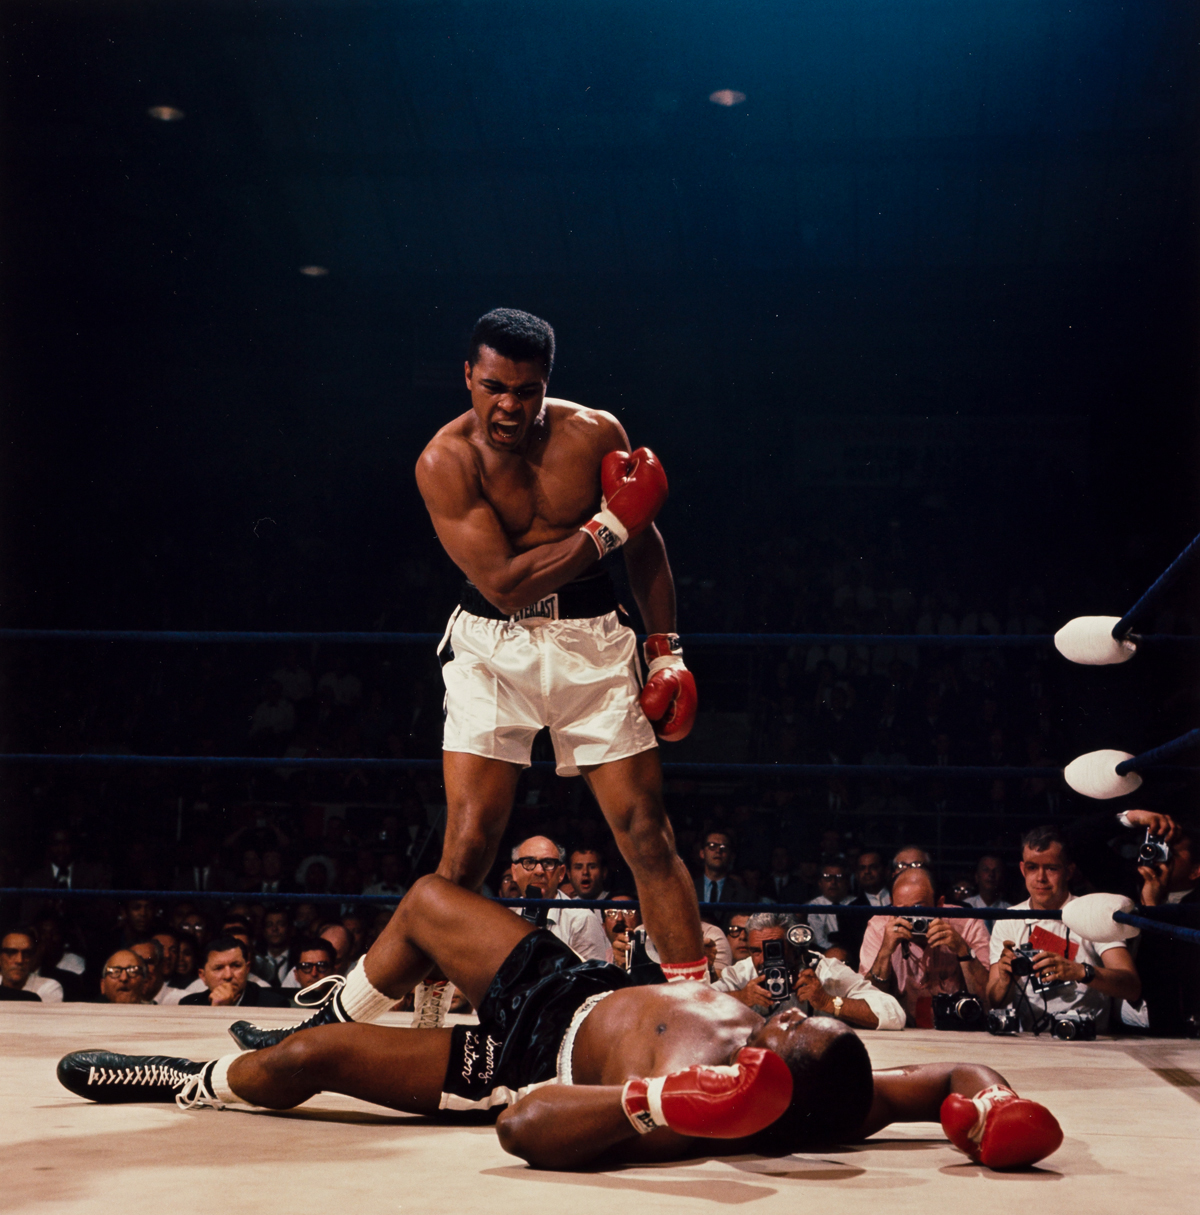 NEIL LEIFER (1942- ) Muhammad Ali reacts after his first round knockout of Sonny Liston during the 1965 World Heavyweight Title fight